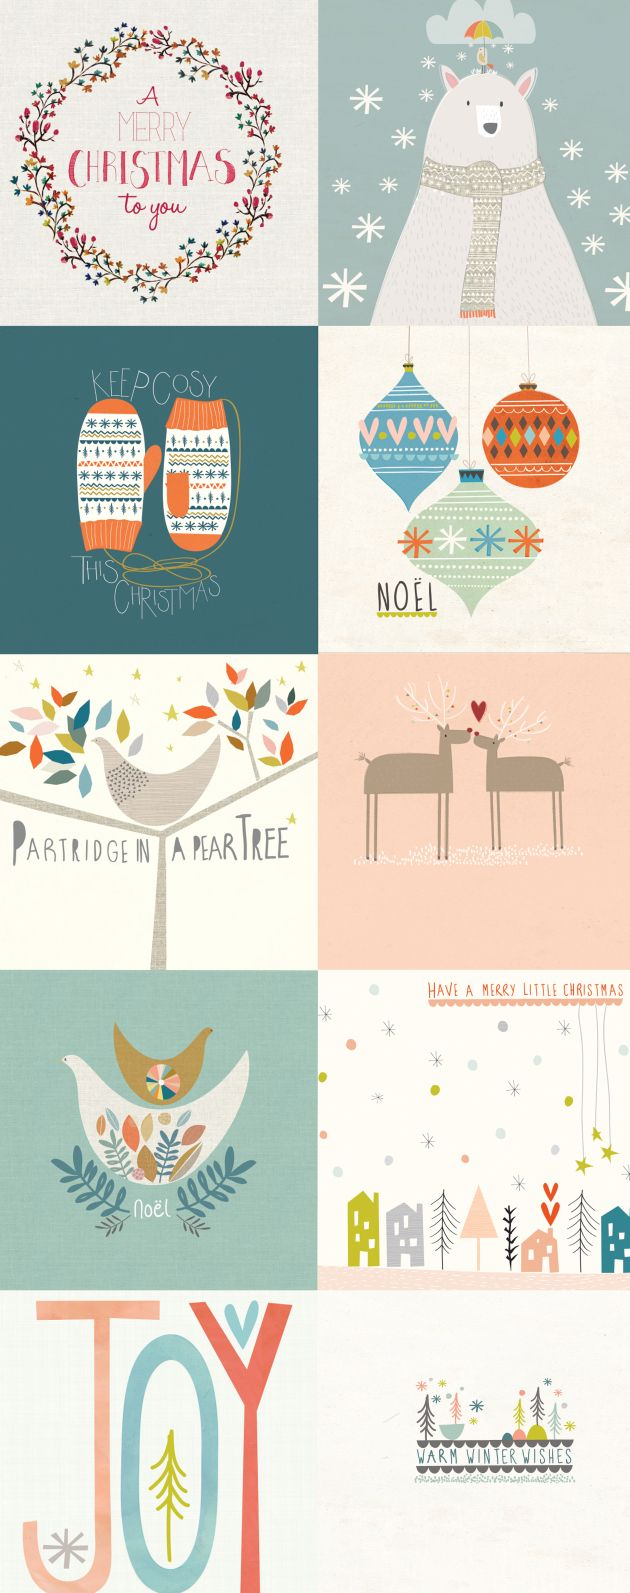 Paper Moon Illustrations & Pattern